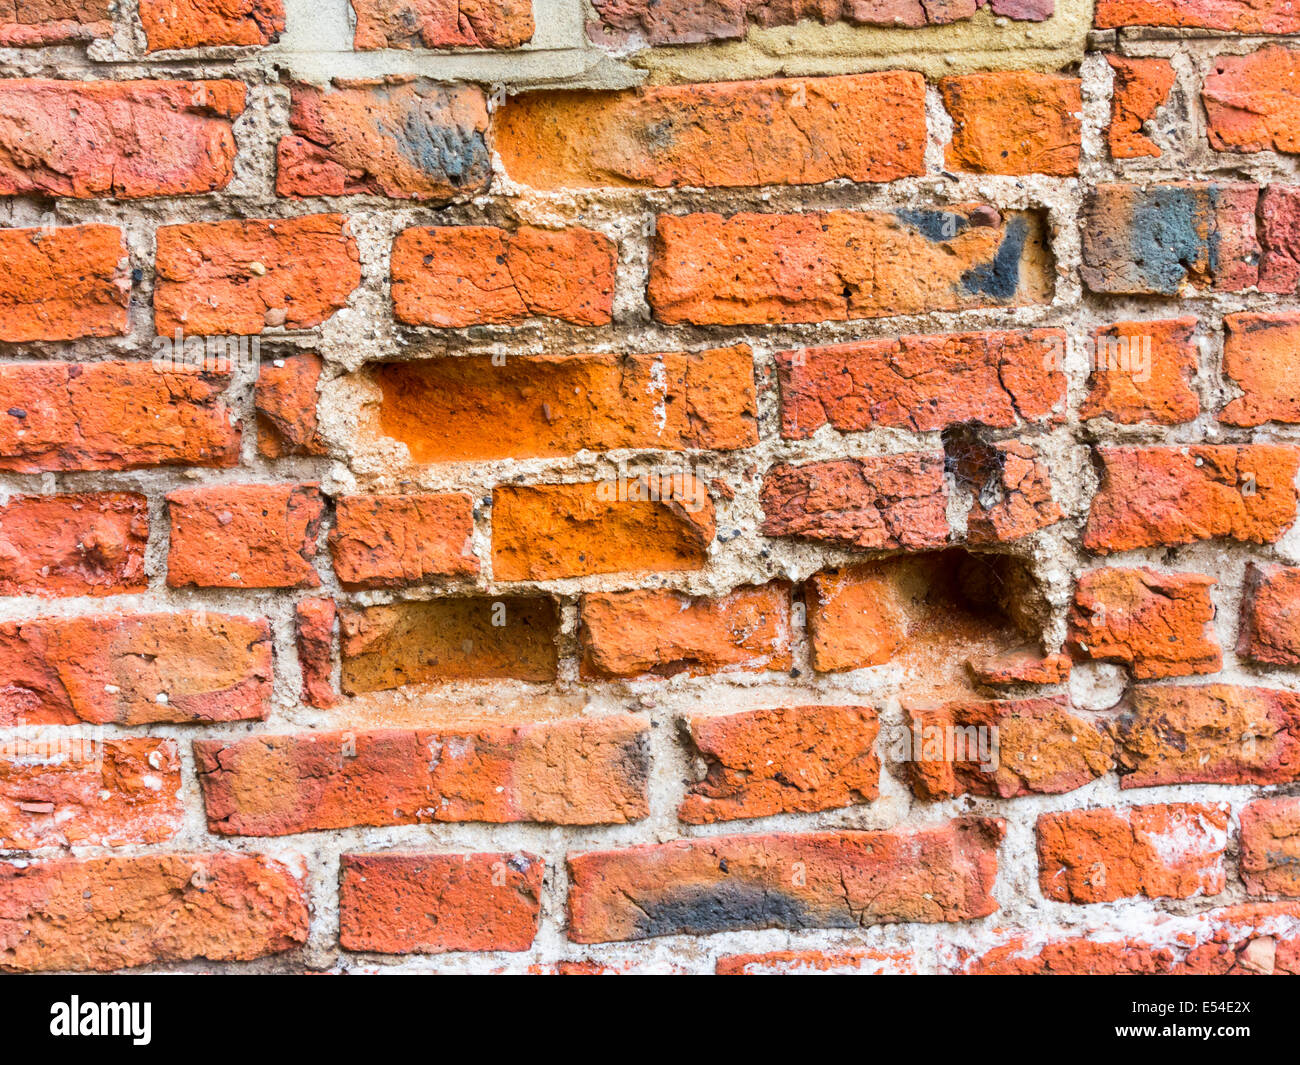 A Flemish Bond Red Brick Wall Severely Weather Damaged By